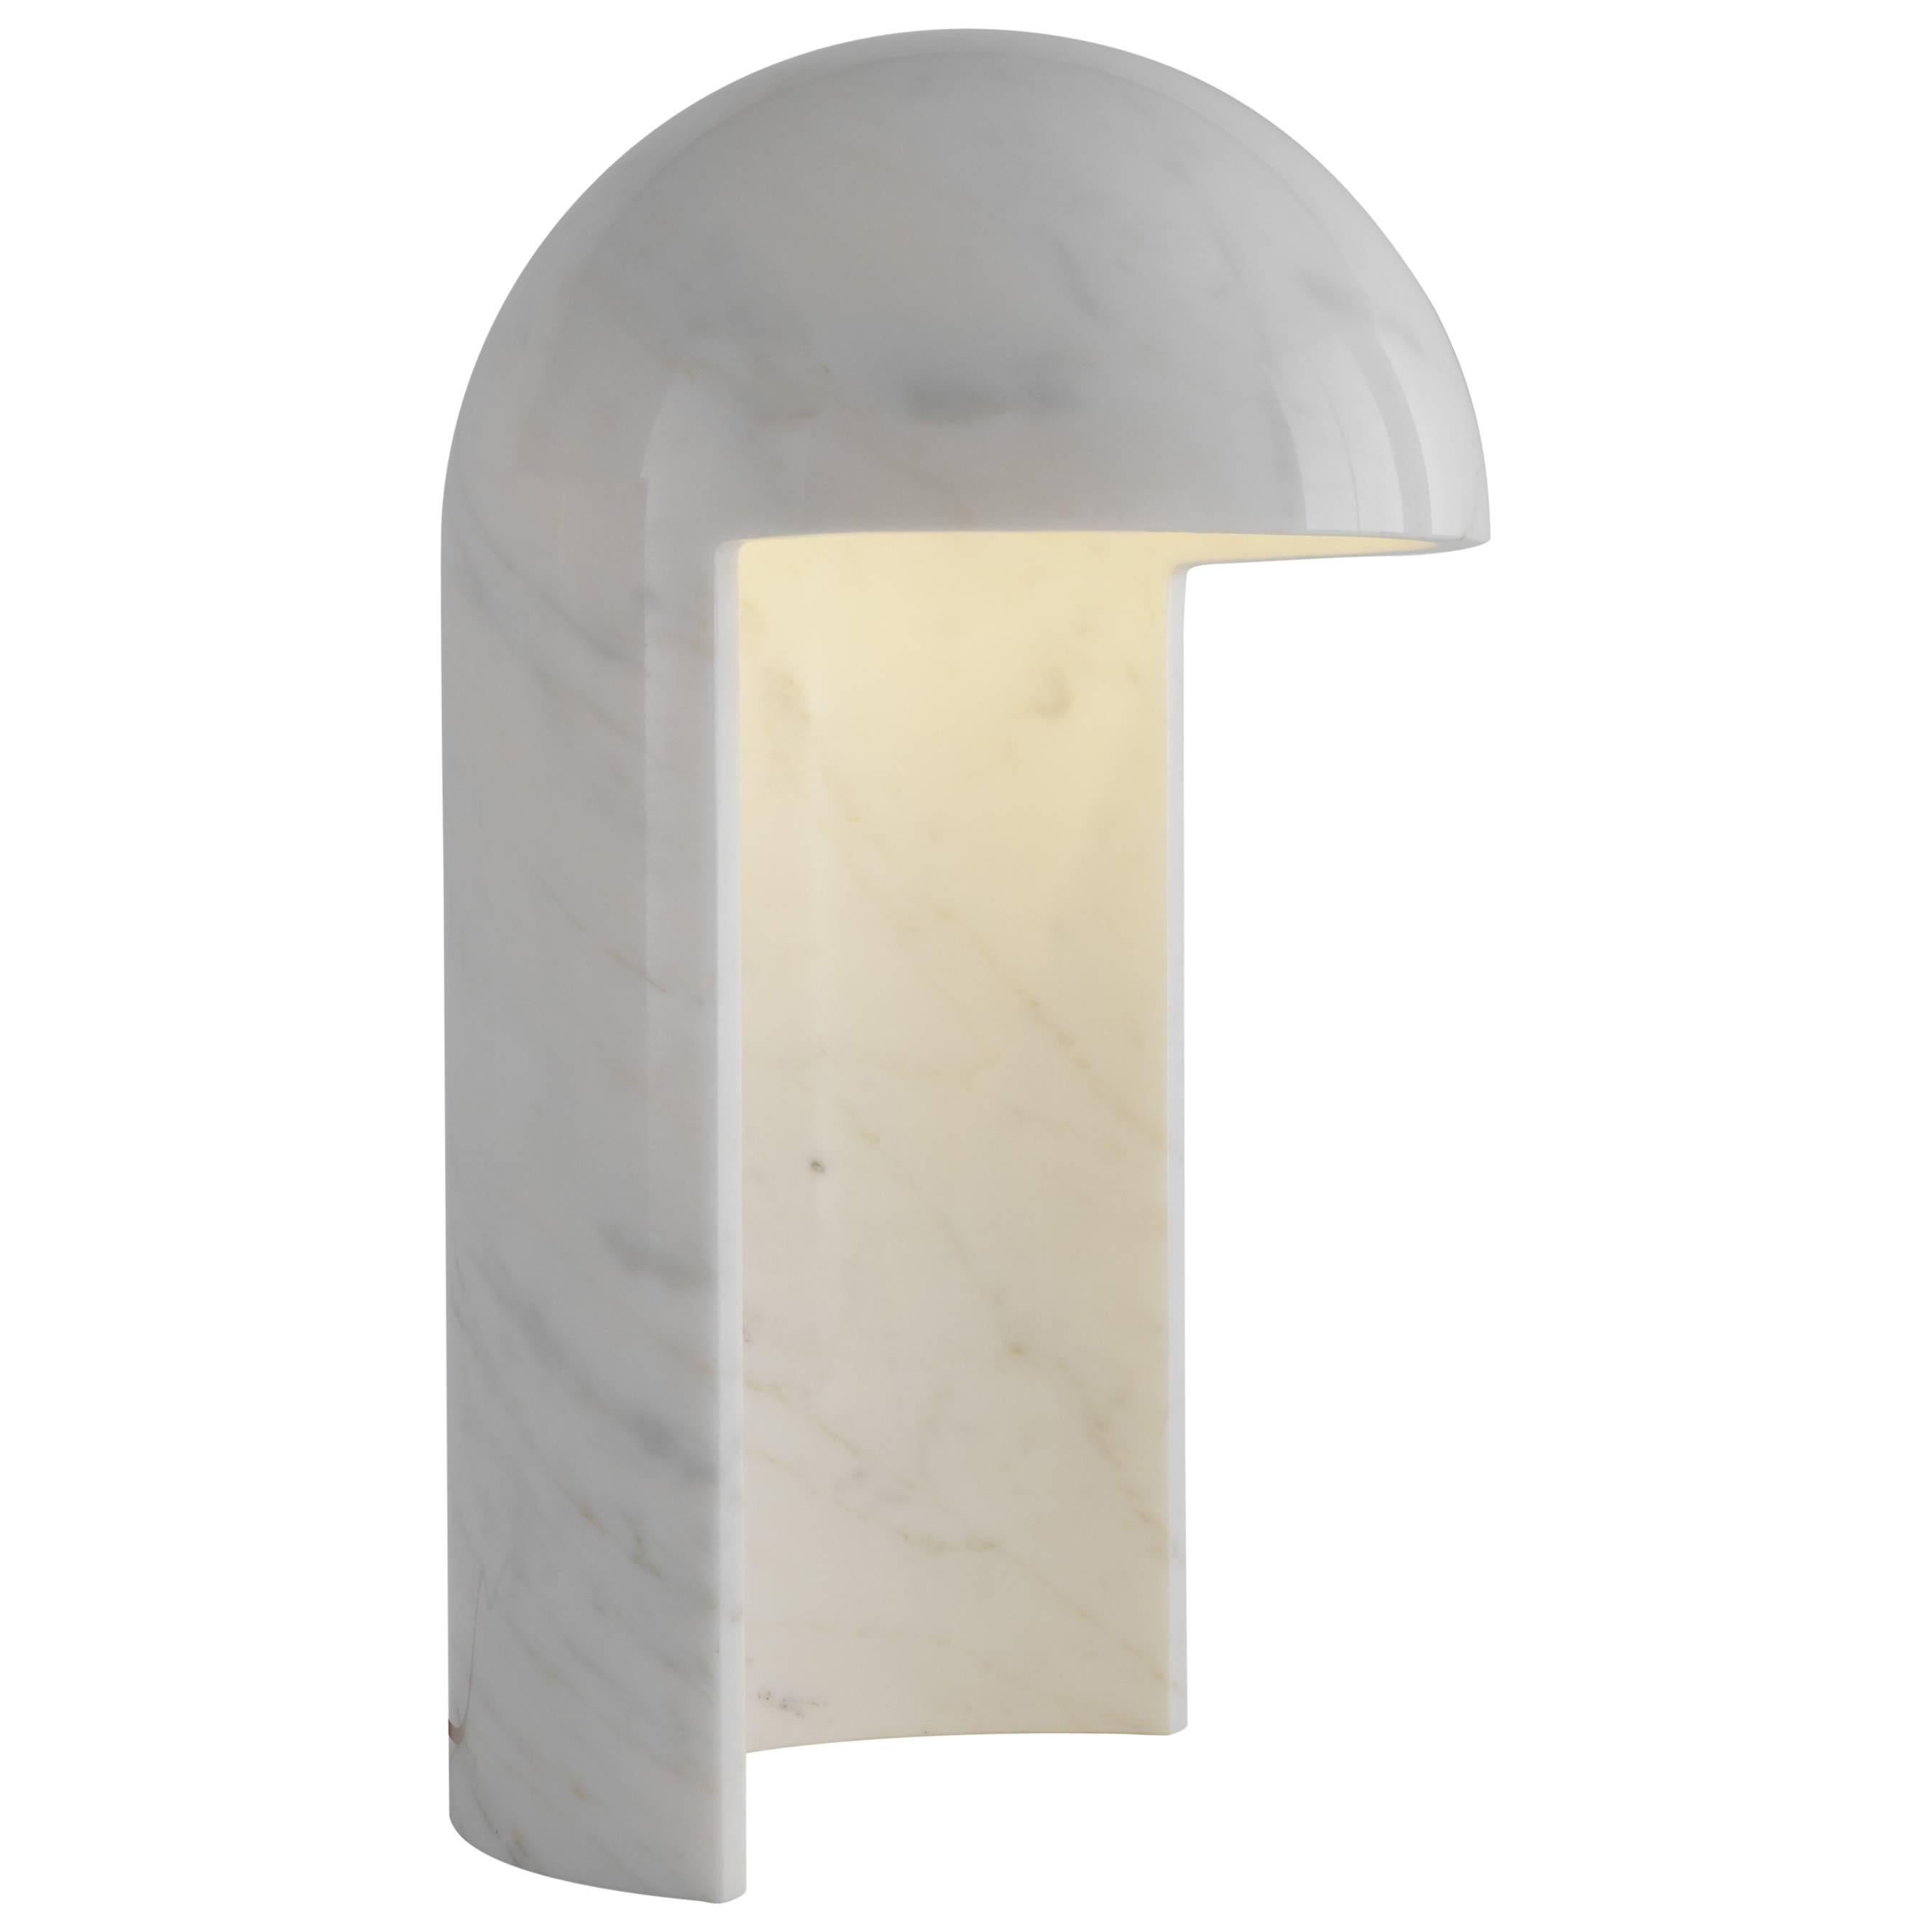 Milano 2015 Marble Table Lamp Designed by Carlo Colombo for Fontana Arte